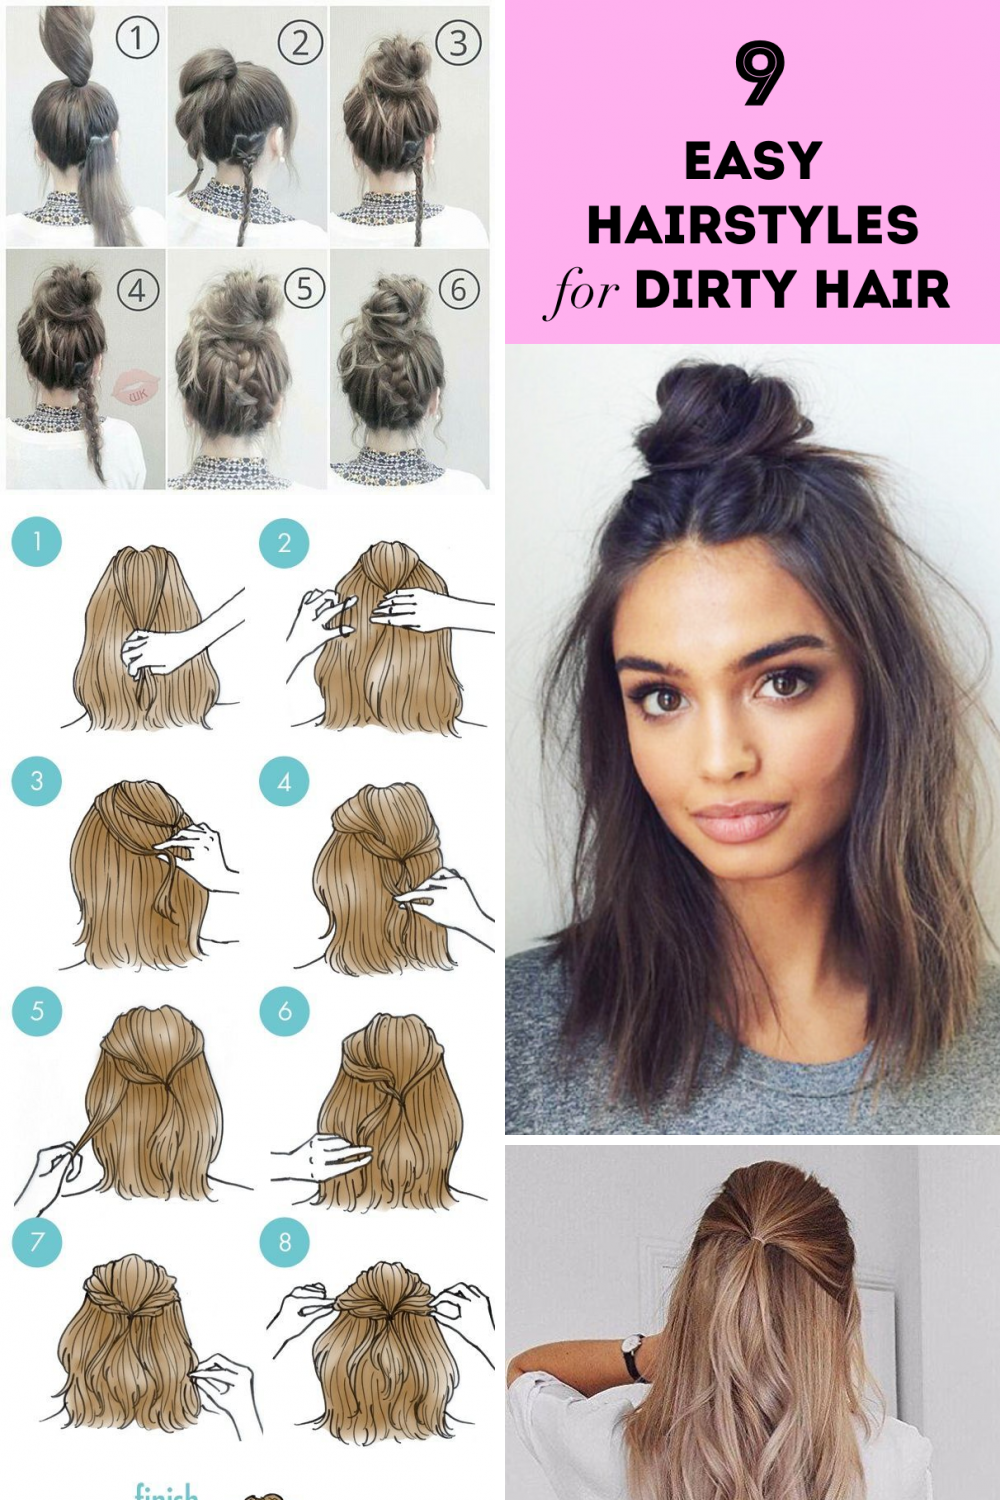 Pin On Cute Hairstyles In 2020 Short Hair Styles Easy Hair Styles Hair Tutorials For Medium Hair